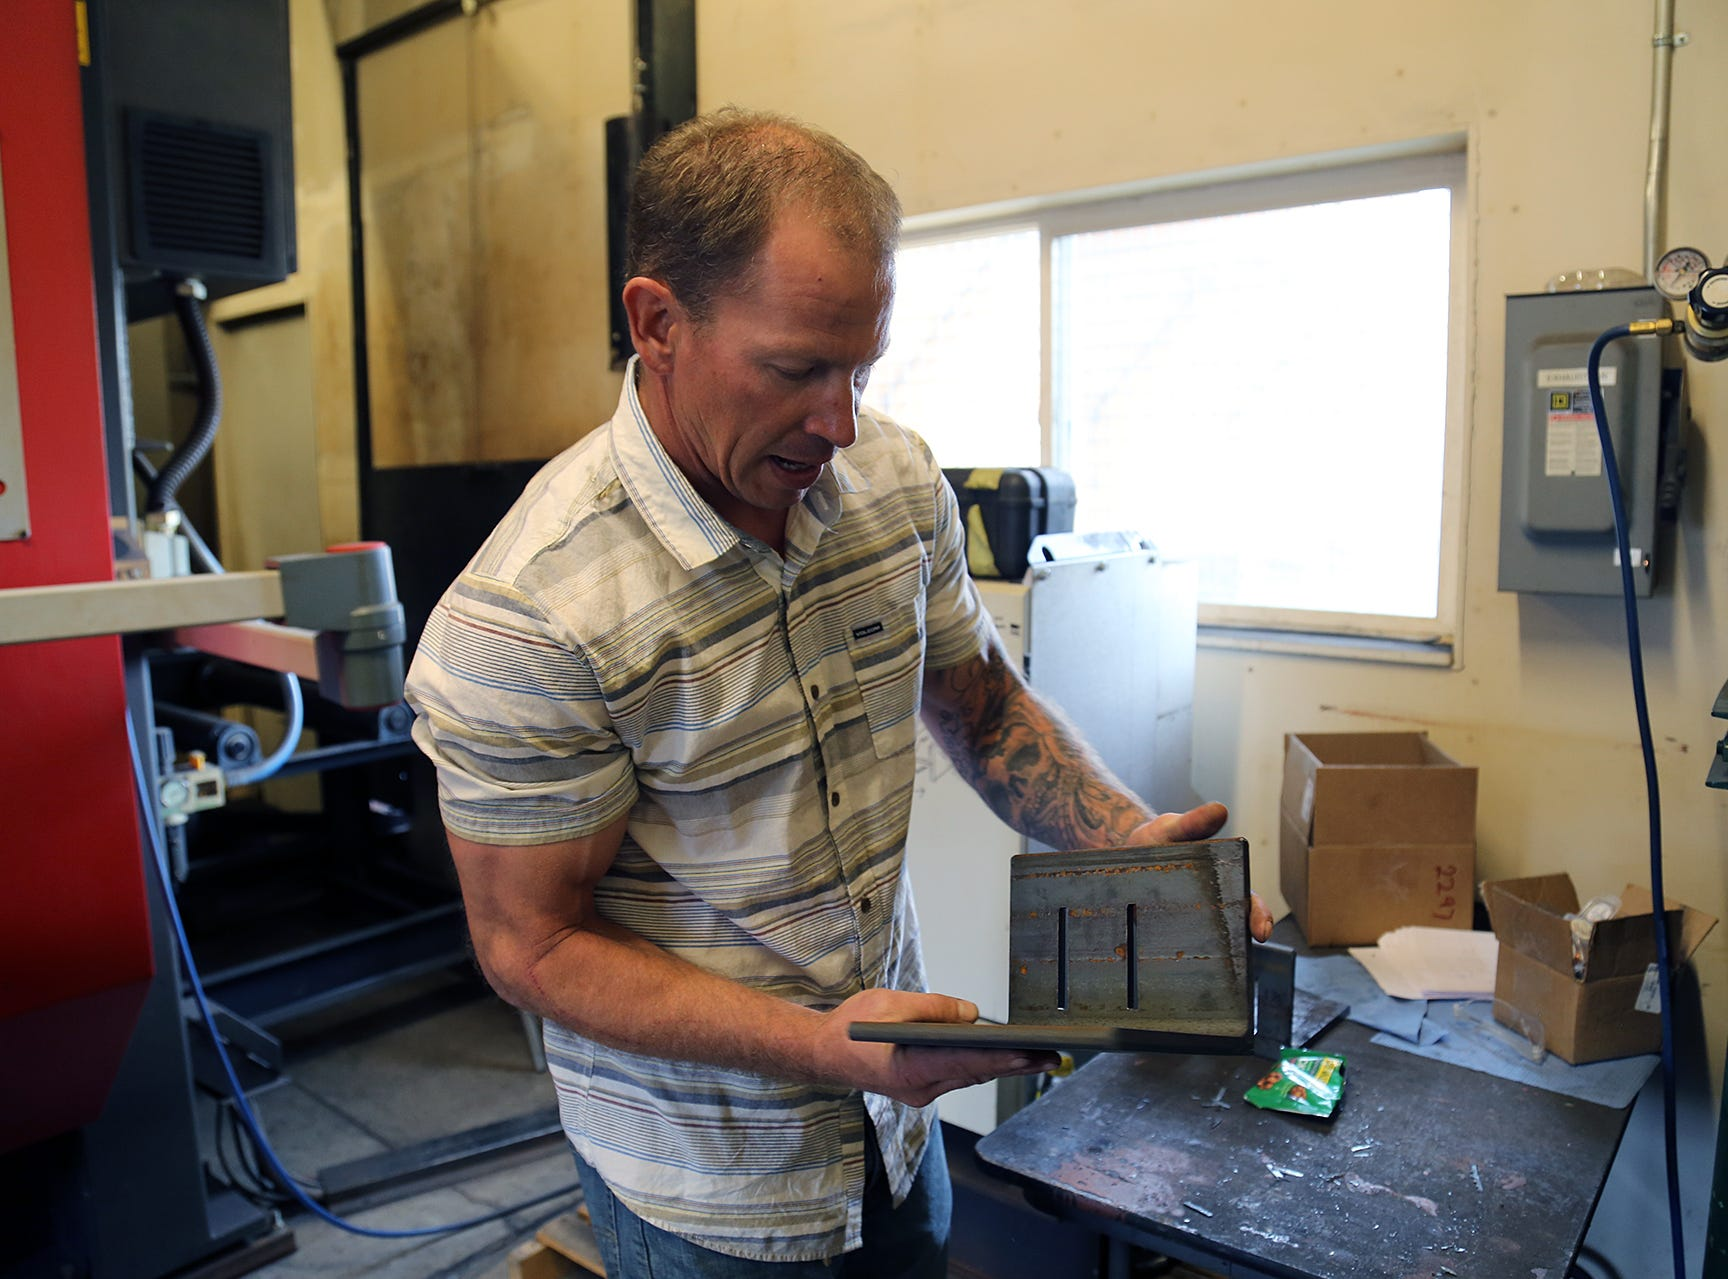 Chad Giguiere, owner of Twisted Metal in Reno, shows off one of the pieces created on a Python X CNC steel fabrication system for his shipping container-based housing concept on April 30, 2019.